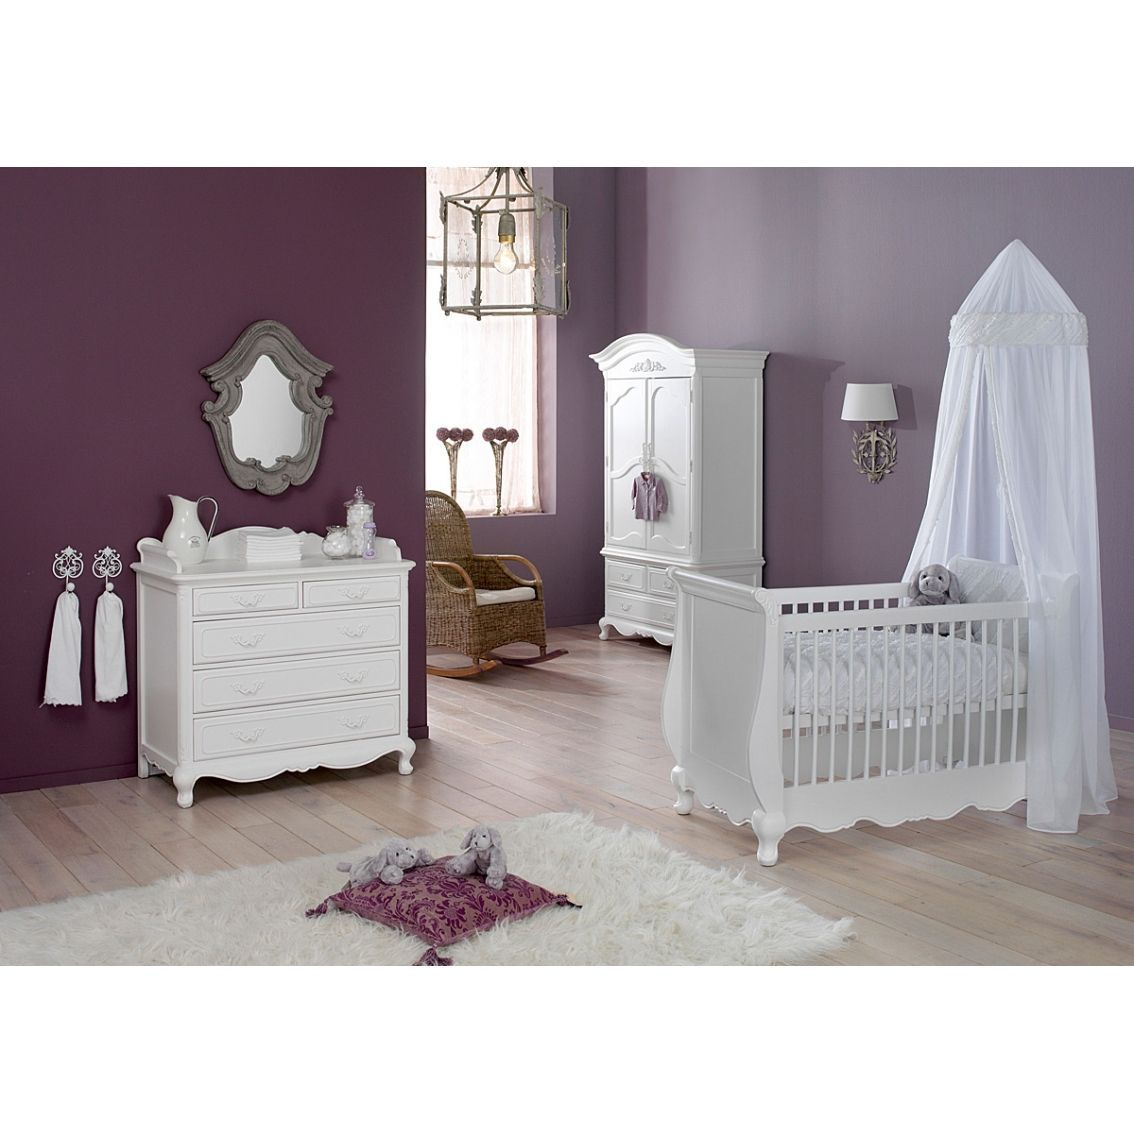 top baby furniture brands. For Top Nursery Furniture Sets Quality, You Could Select The Brands Of It That Make Sure How Long Be Used Your Baby. Baby A